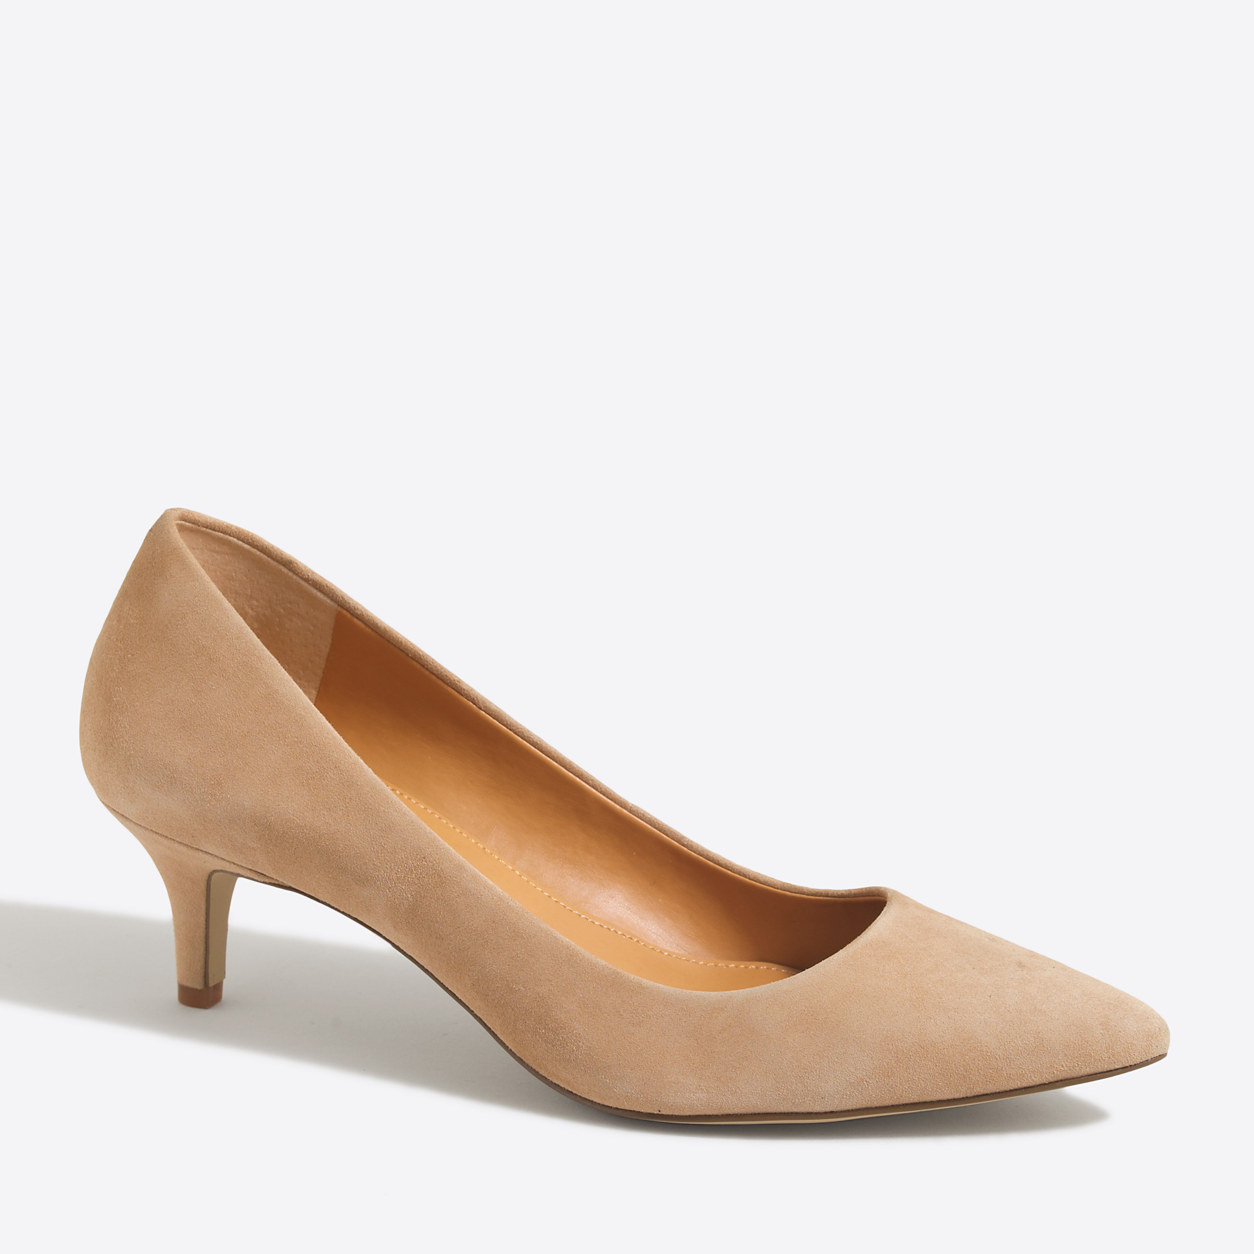 Women's Heels : Women's Shoes | J.Crew Factory - Heels